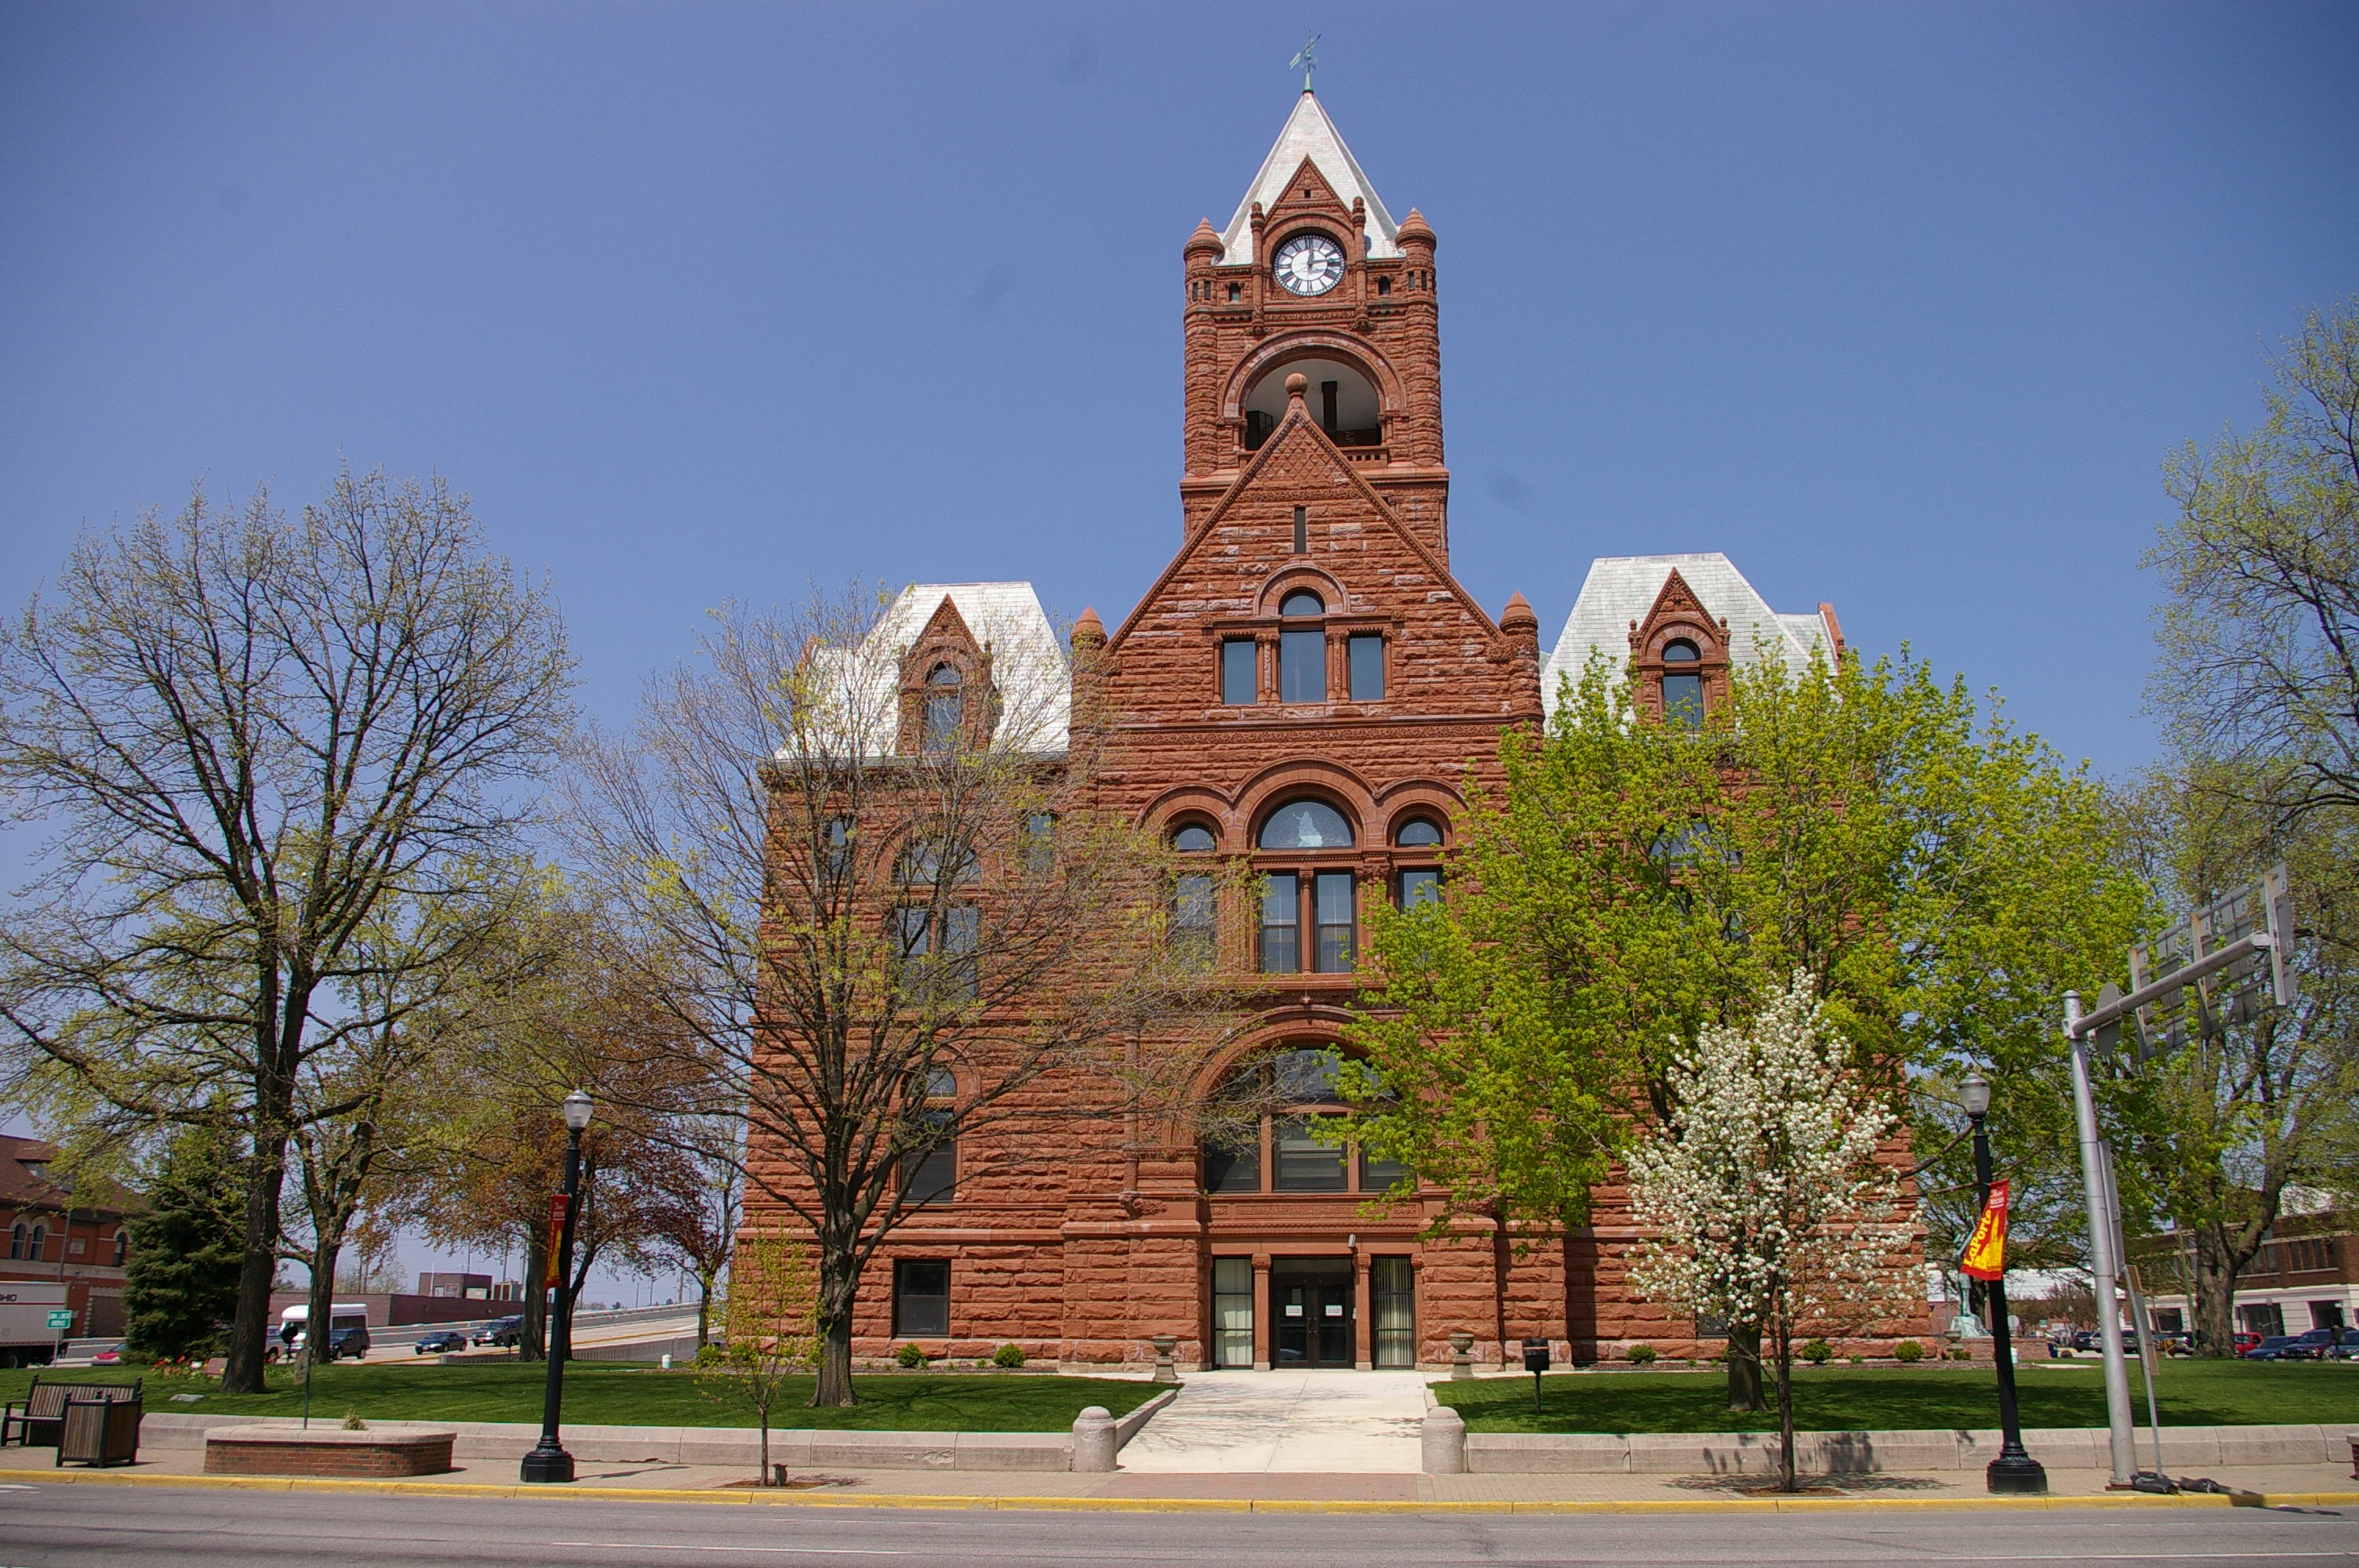 Buildings and structures in laporte county indiana for What county is laporte indiana in